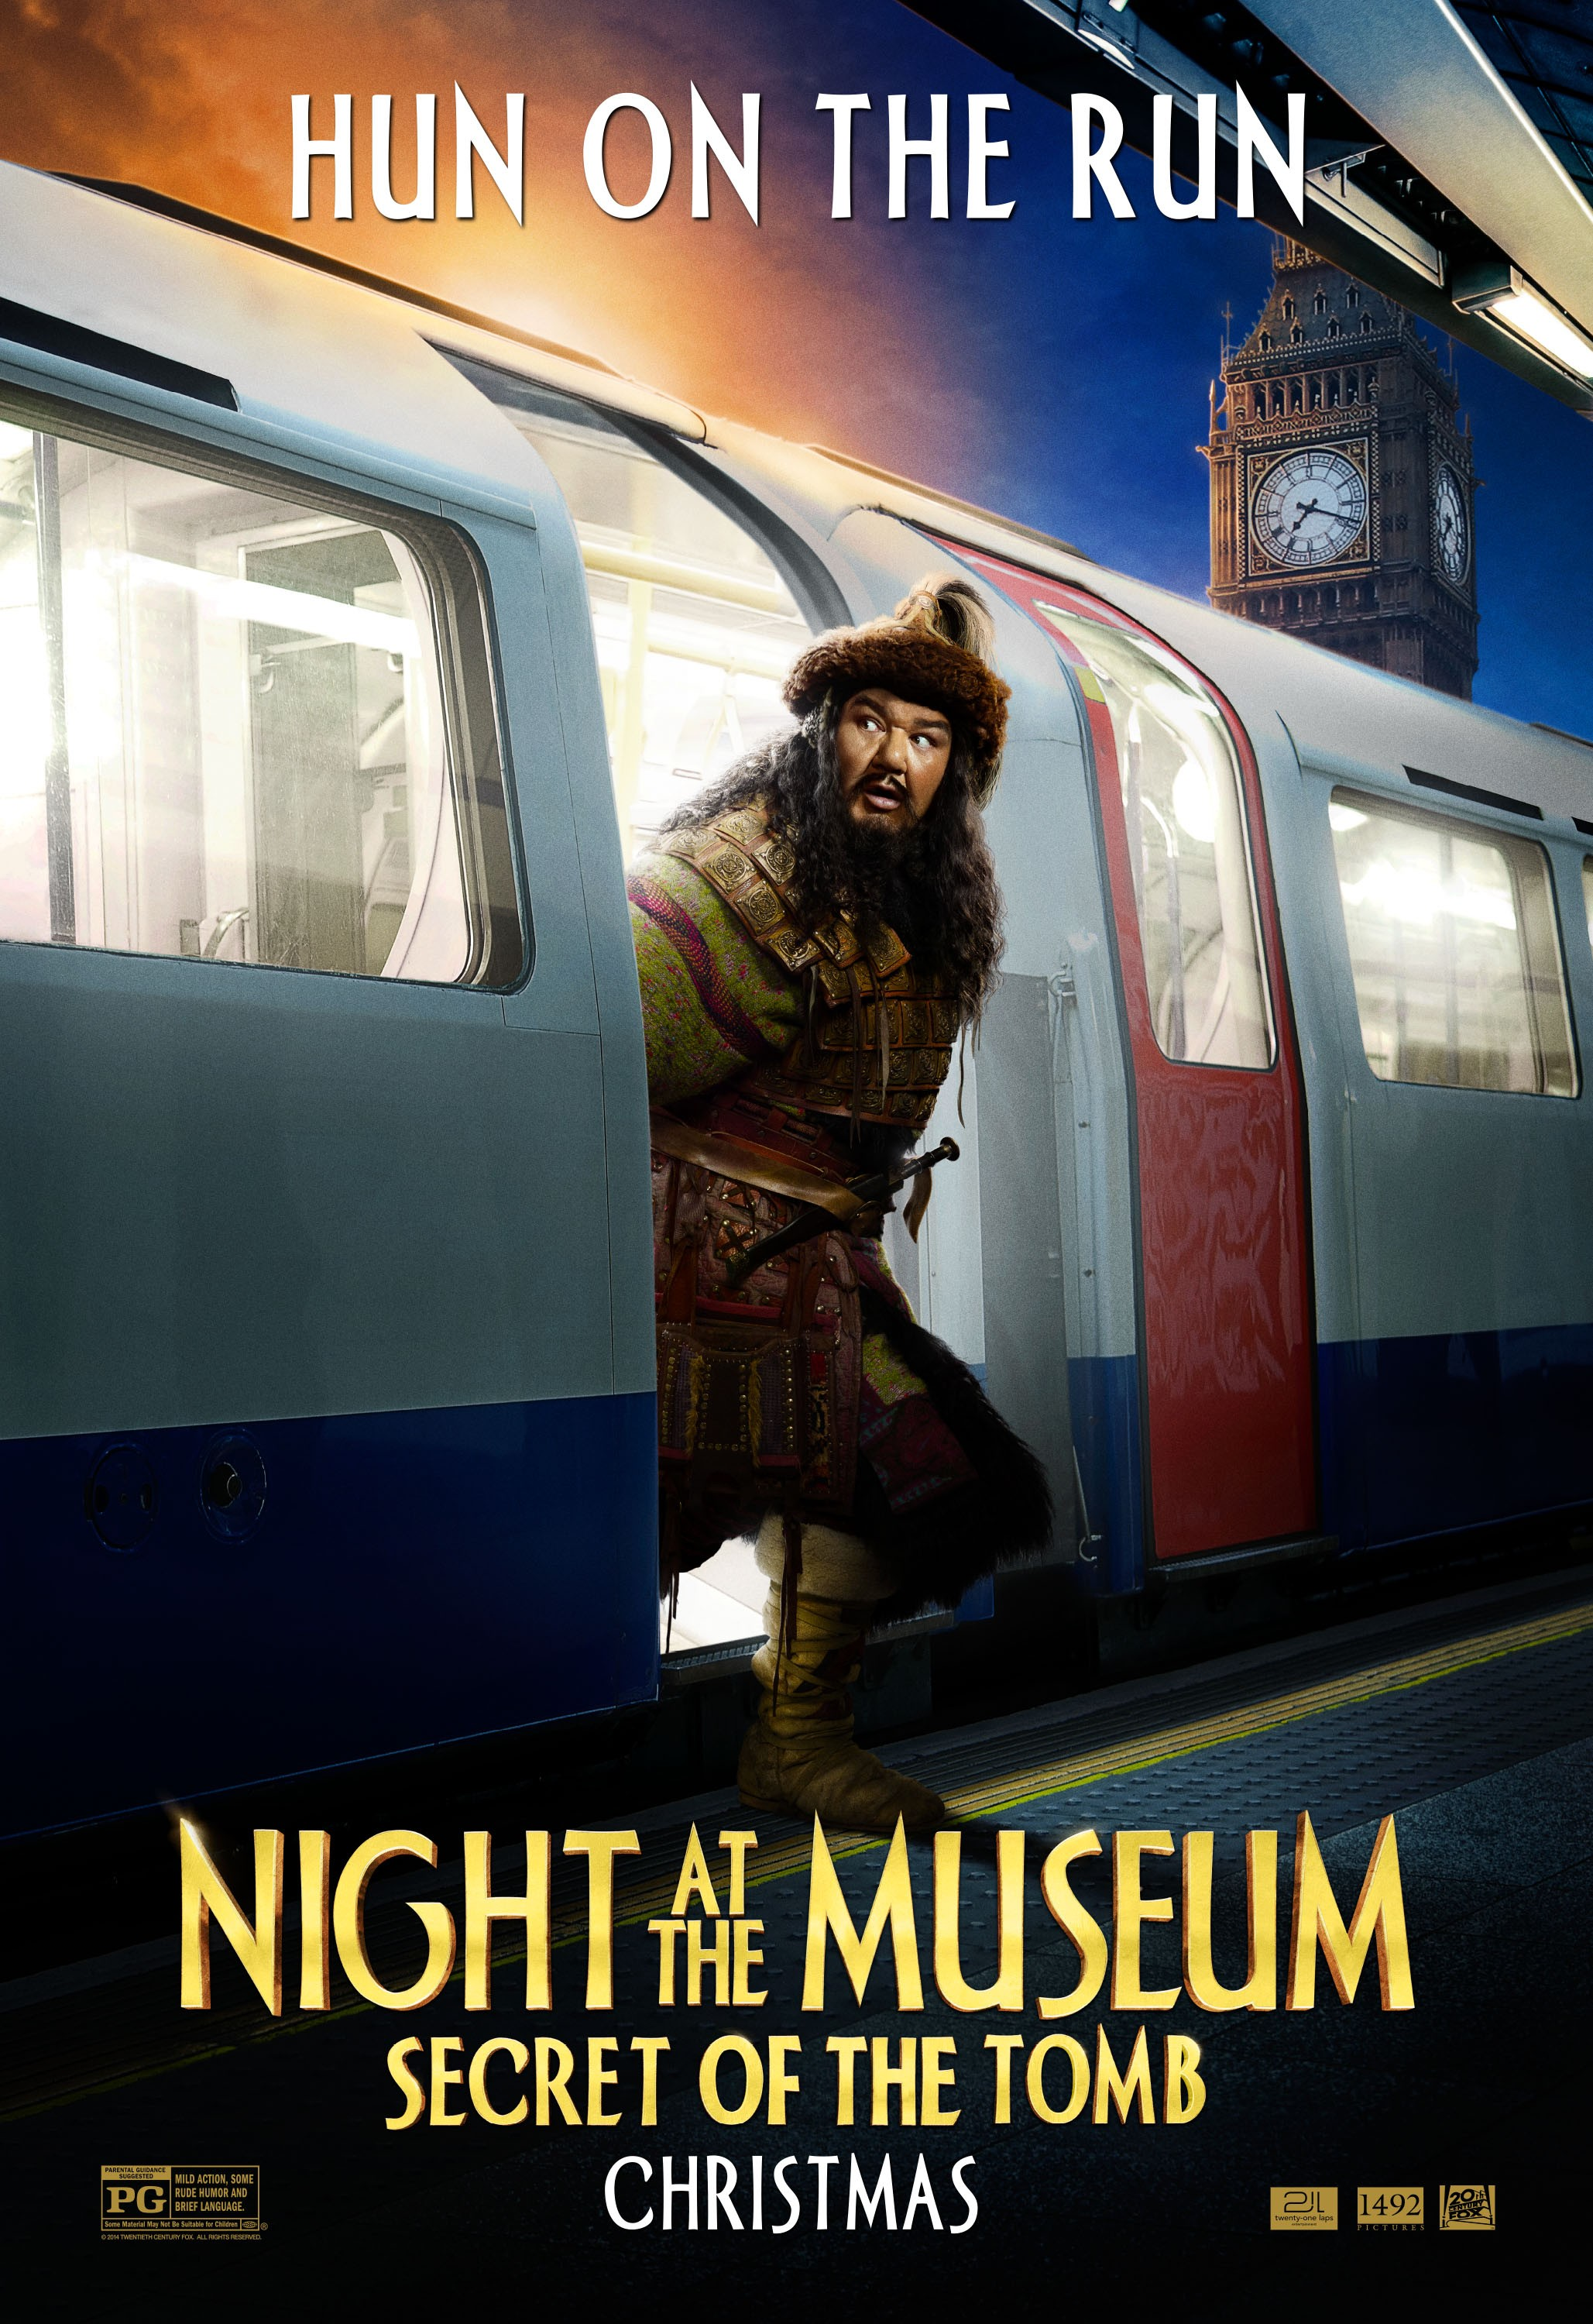 Night at the Museum Secret of the Tomb-PROMO CHAR-21NOVEMBRO2014-01